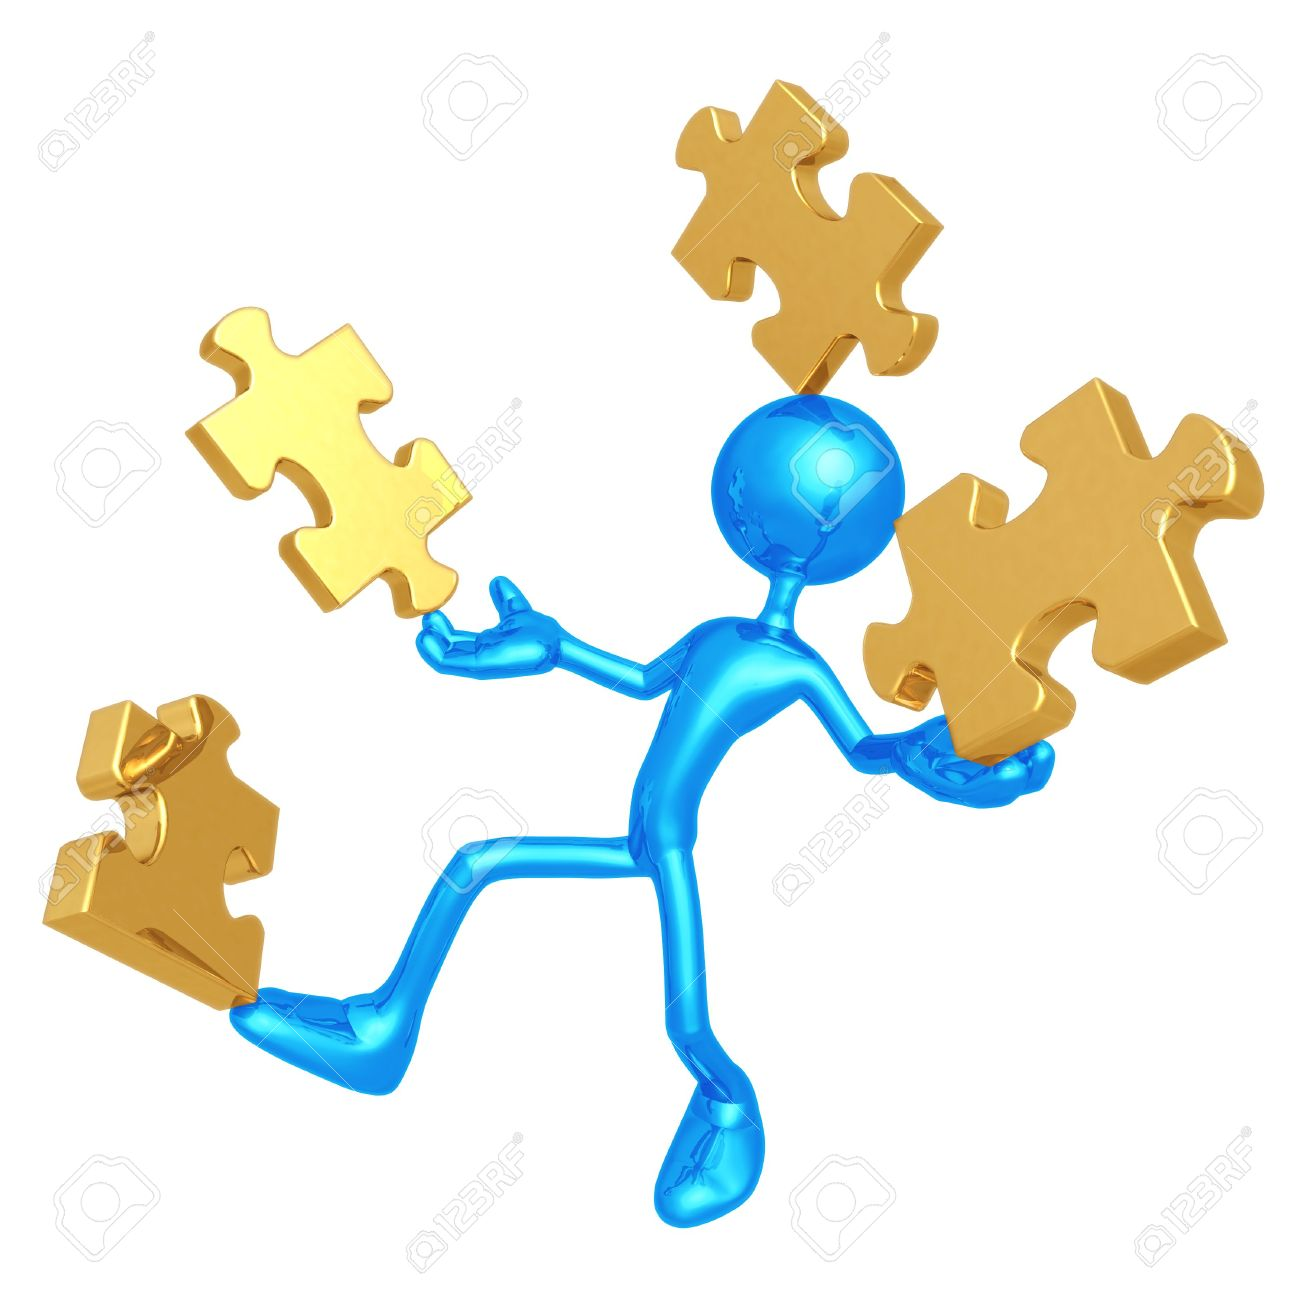 Balancing Puzzle Pieces Stock Photo, Picture And Royalty Free.